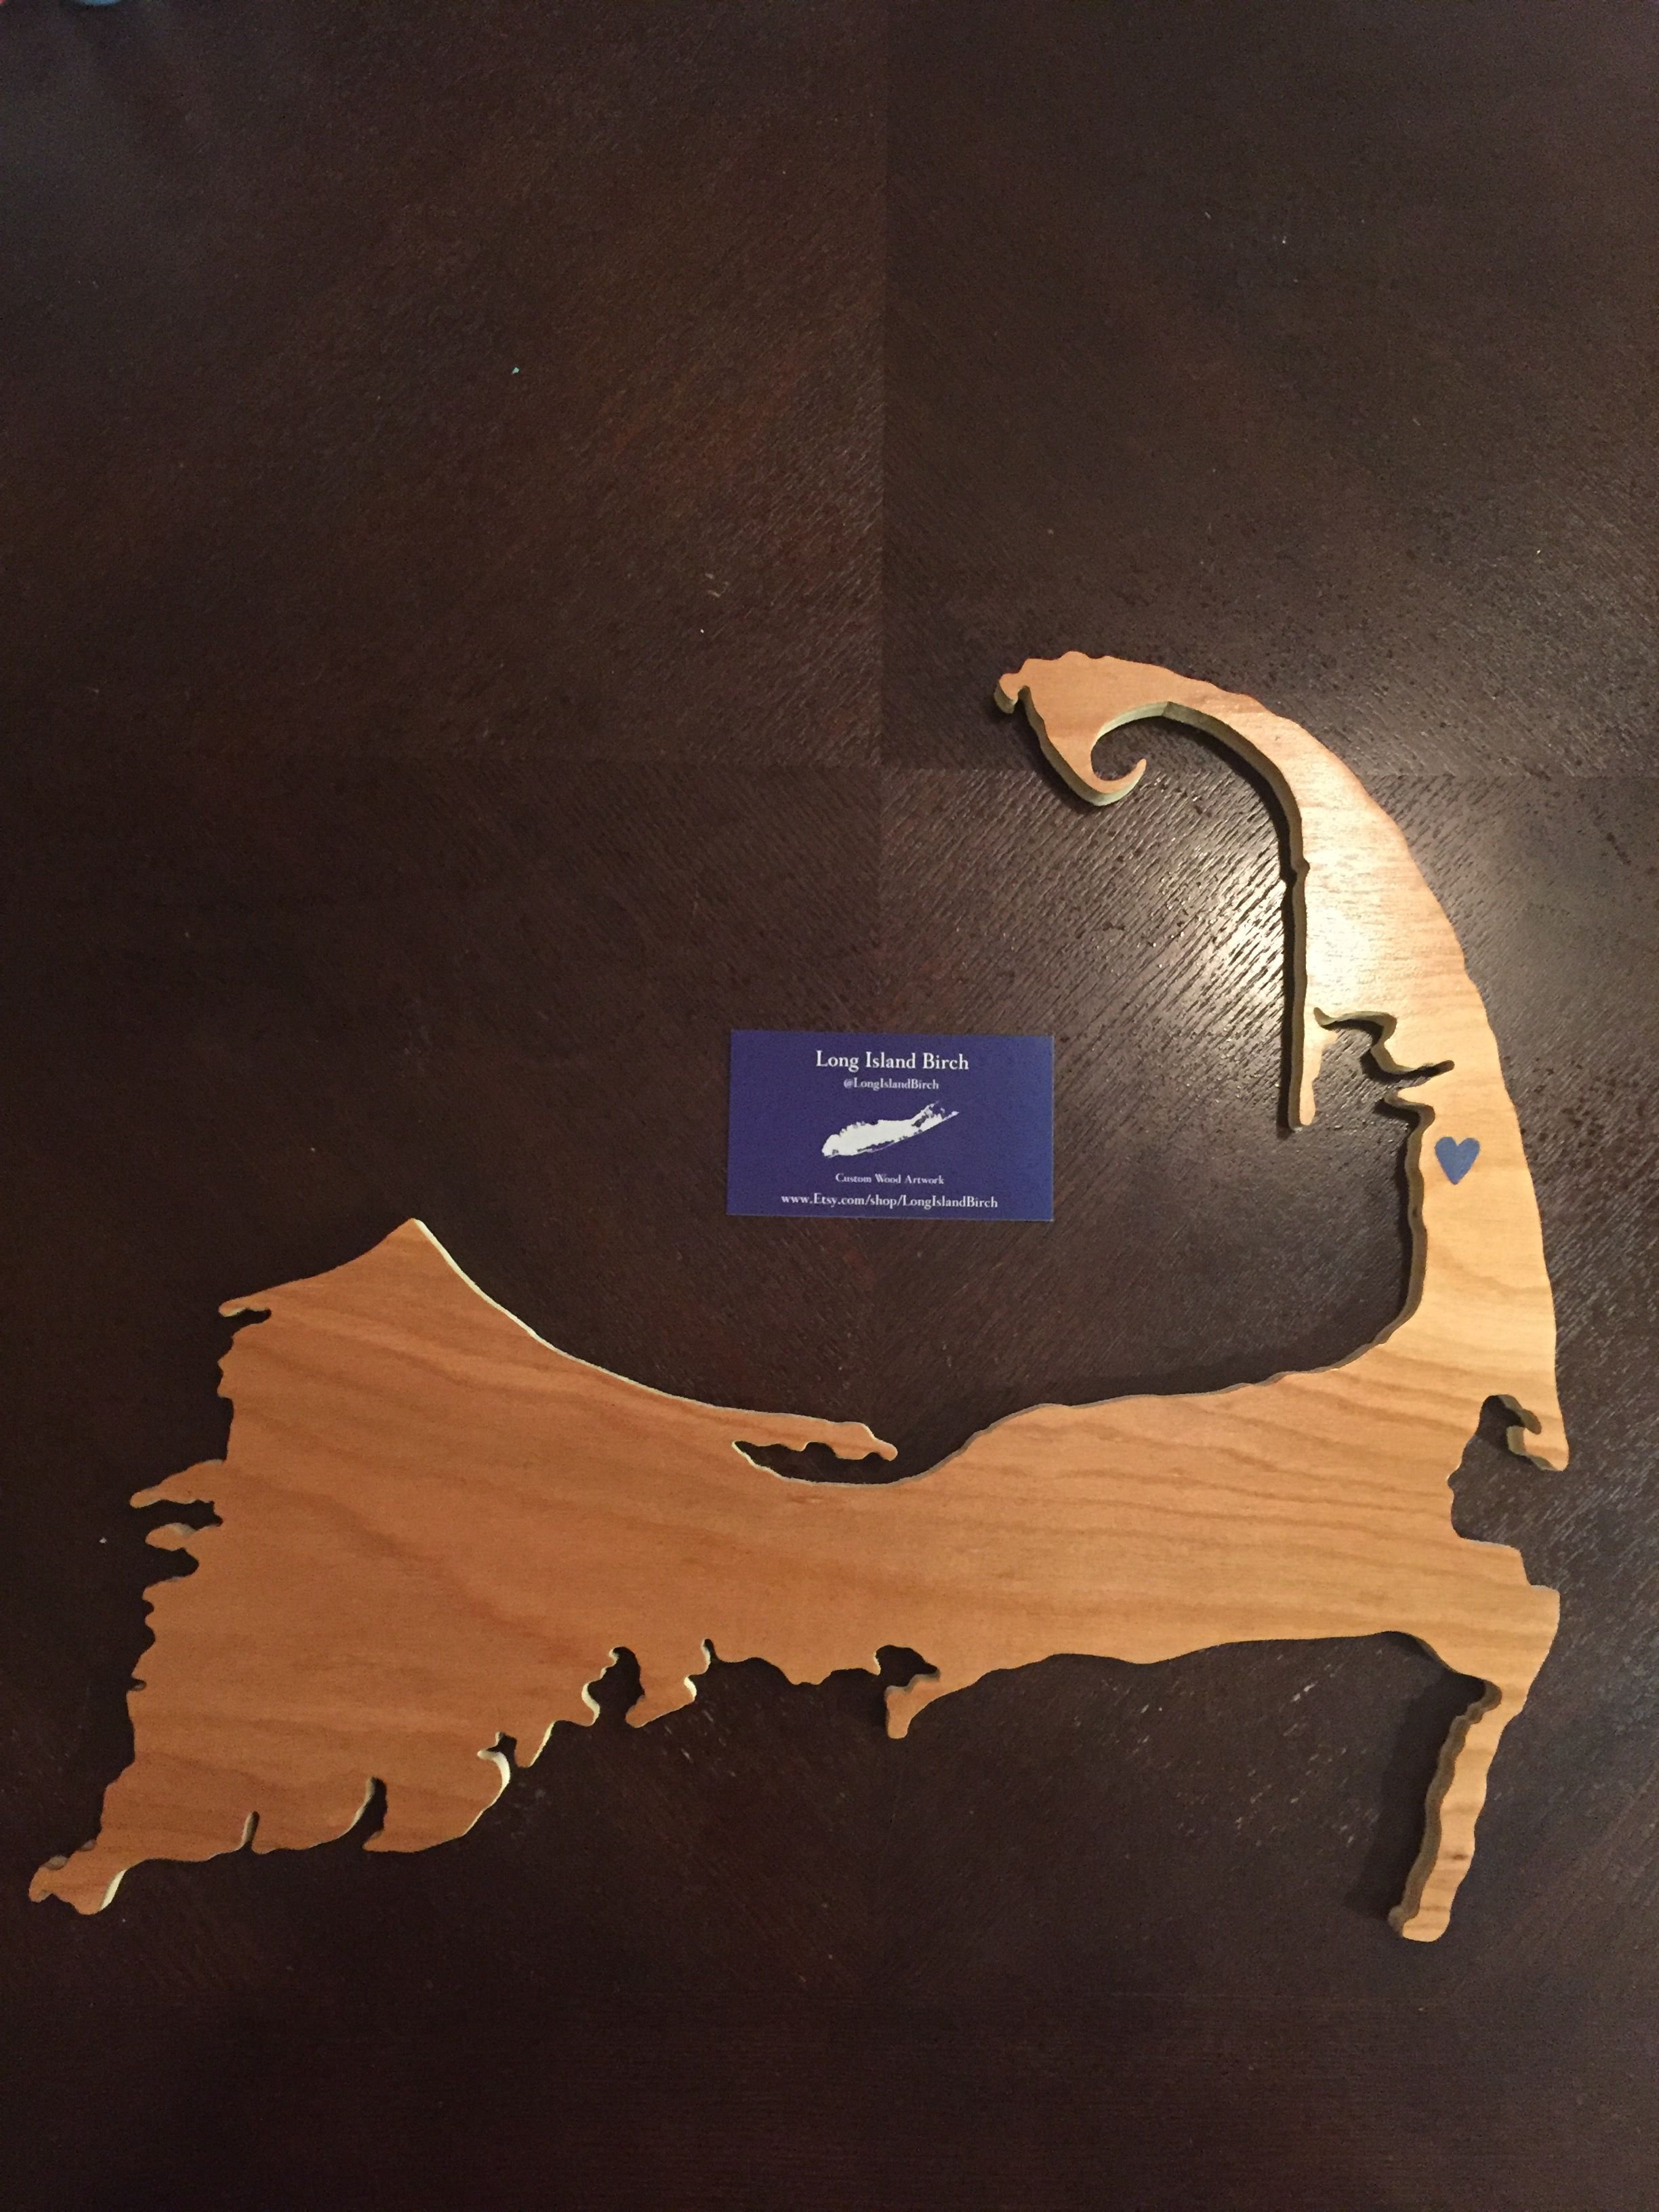 Cape cod map beautifully handcrafted with a hand painted